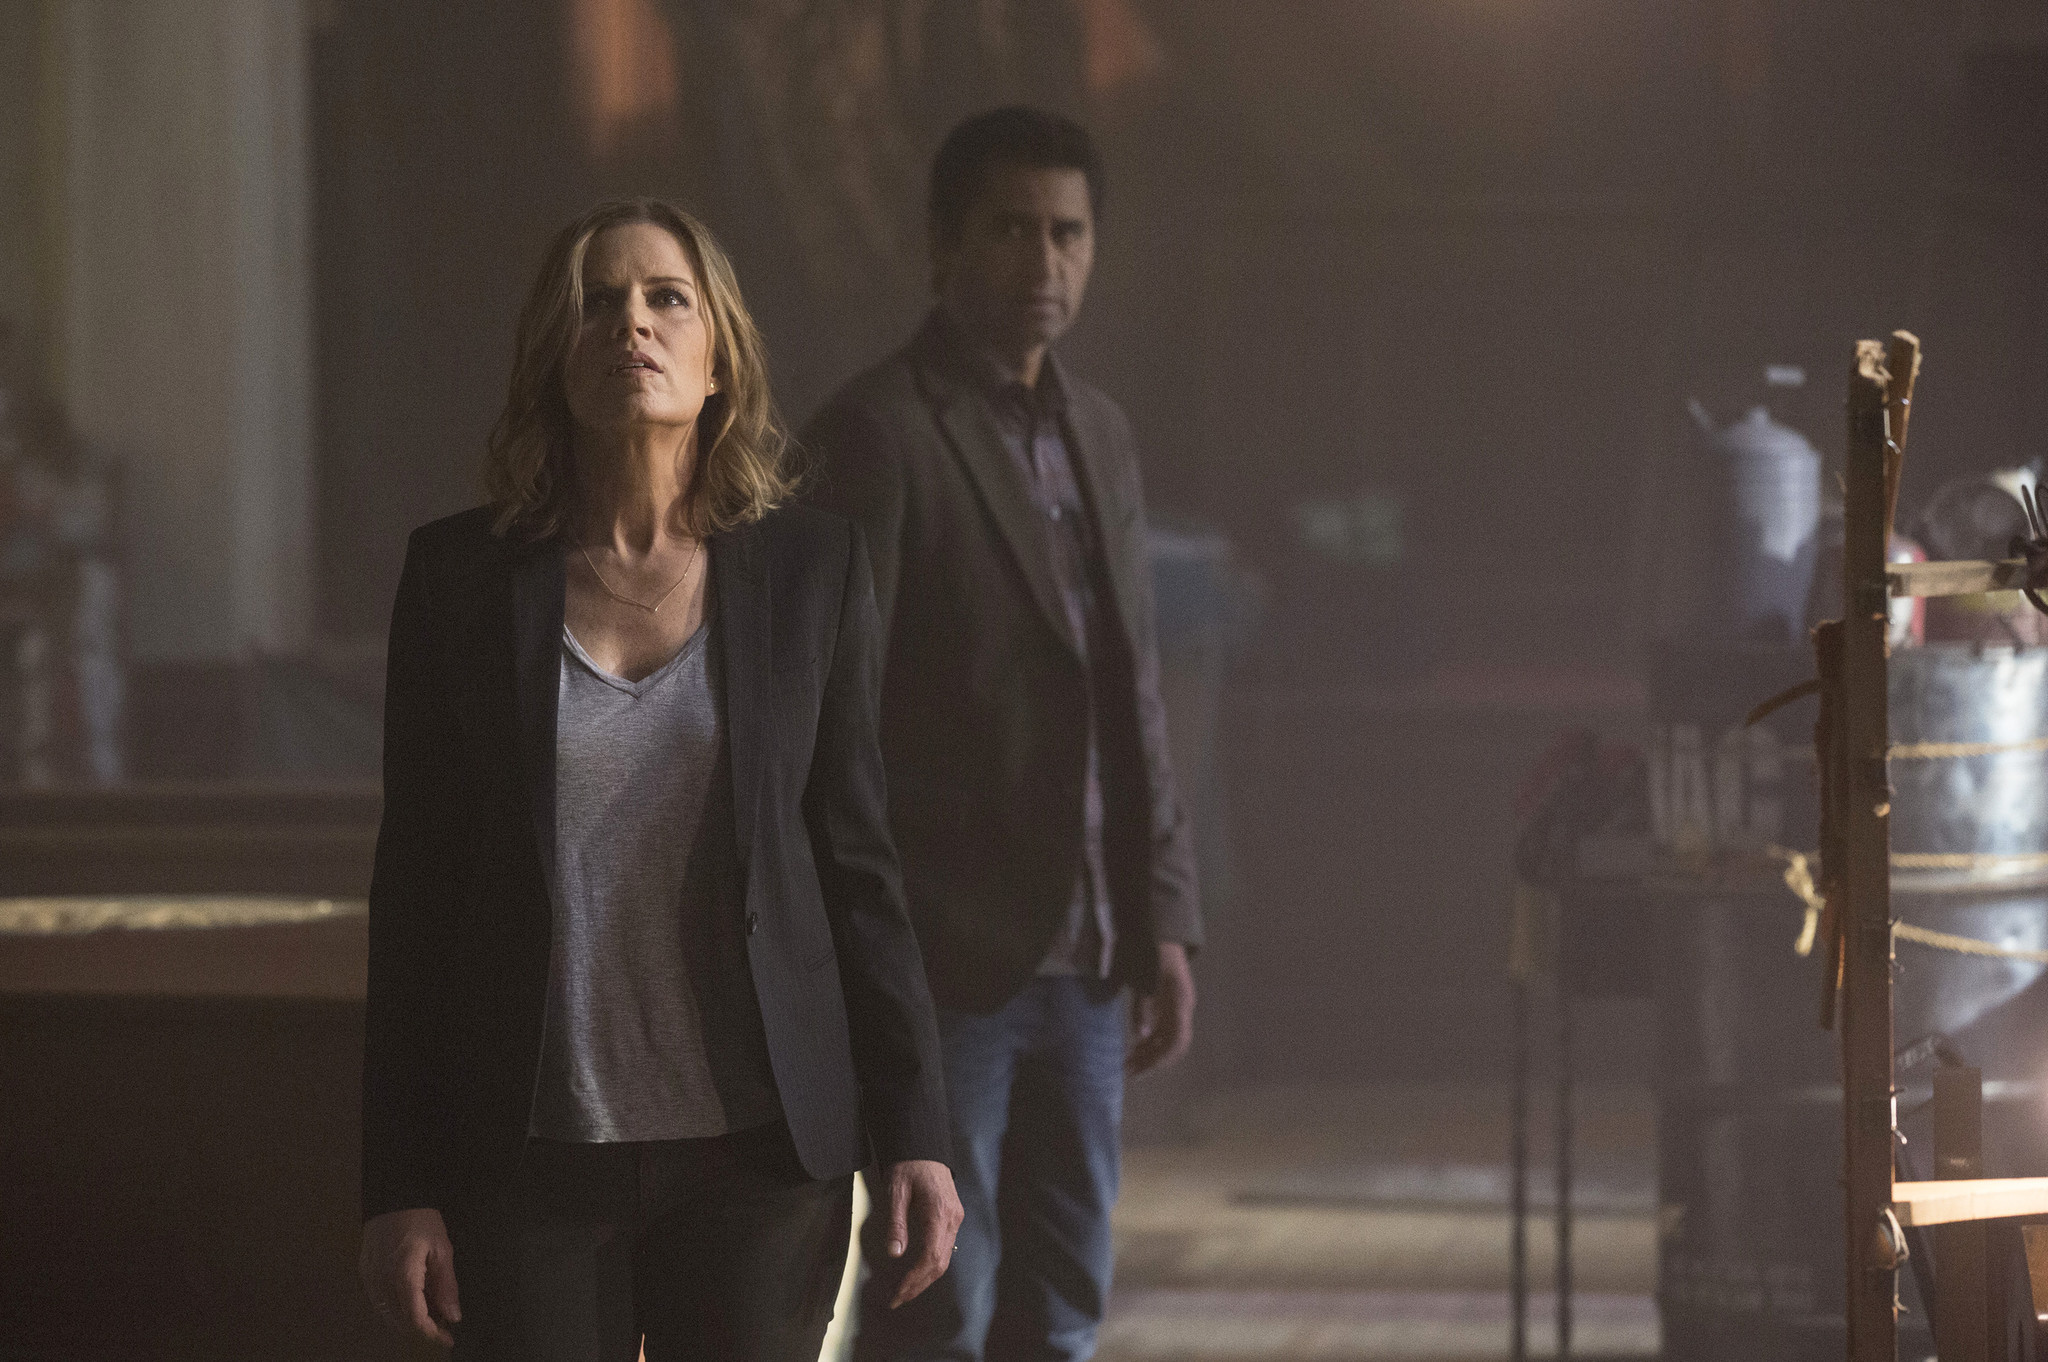 'Fear the Walking Dead' review: Zombie apocalypse feels like a snore